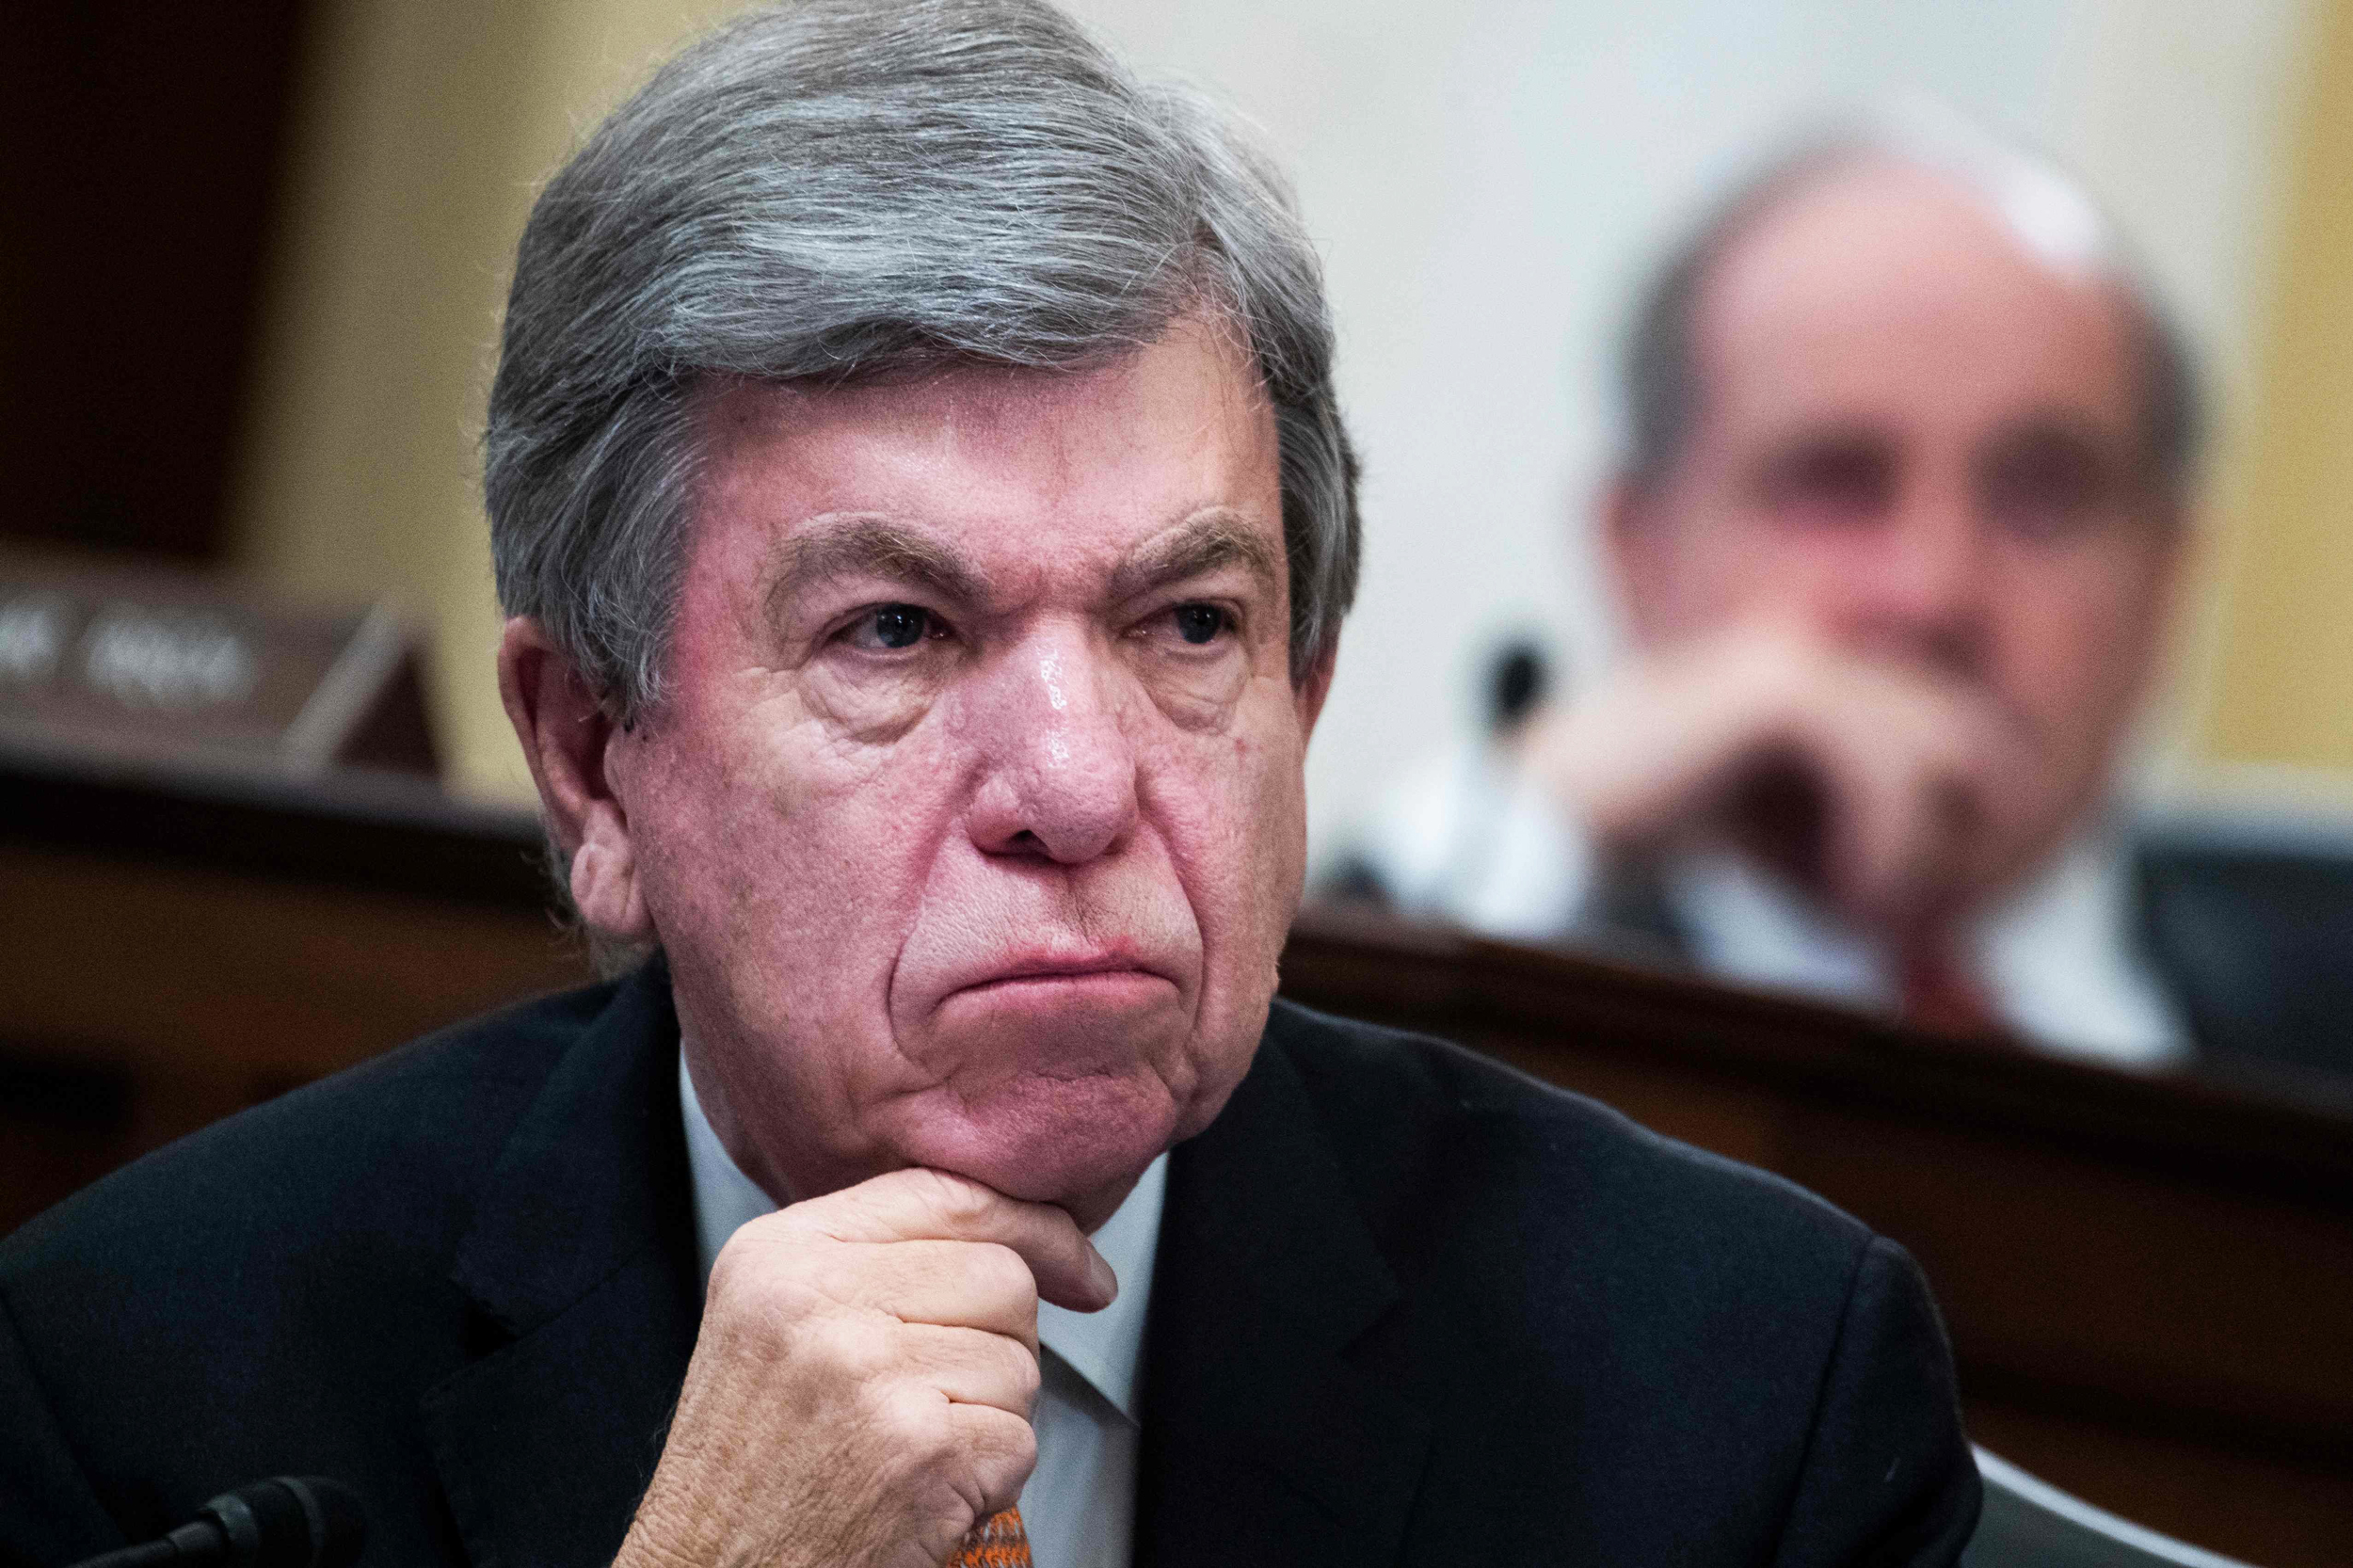 Republican Sen. Roy Blunt announces he won't seek re-election in 2022